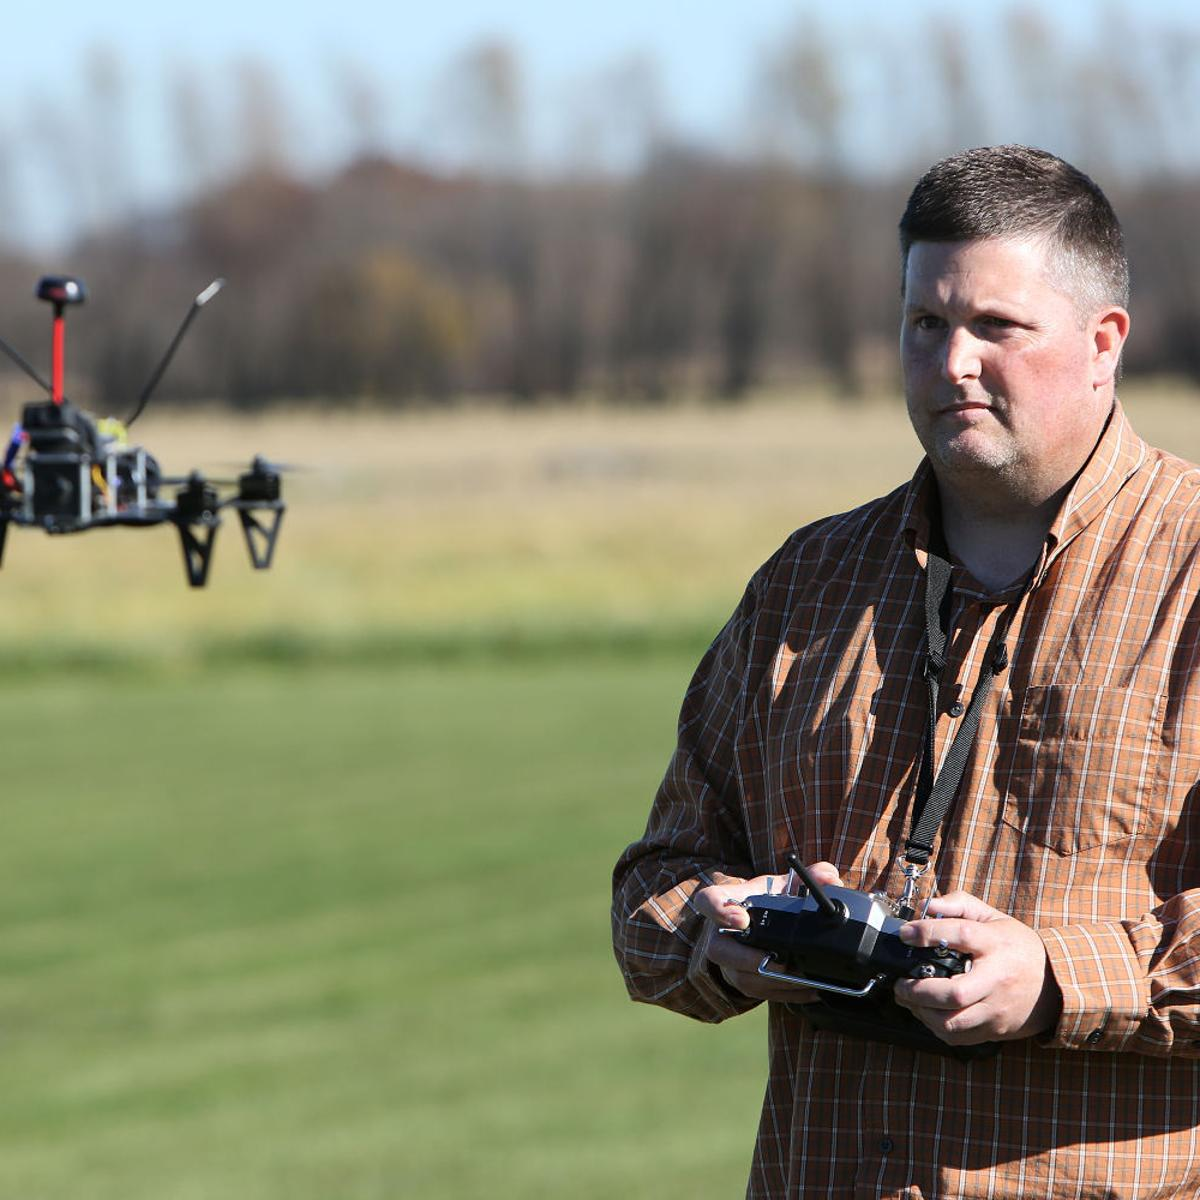 BZZZZZZZ! Drones are showing up in the air over Wisconsin